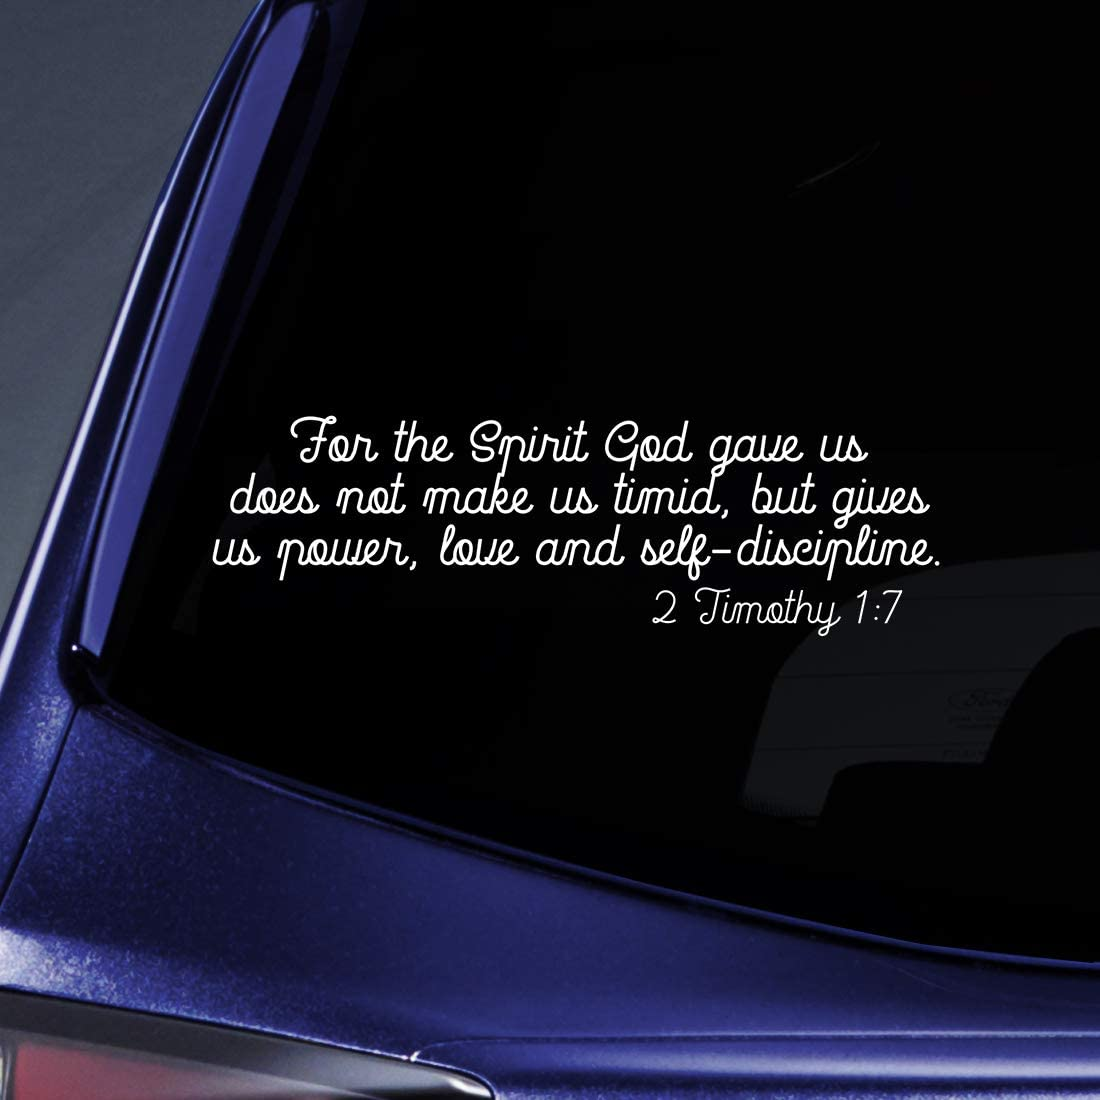 """Bargain Max Decals 2 Timothy 1:7 Verse Sticker Decal Notebook Car Laptop 8"""" (White)"""